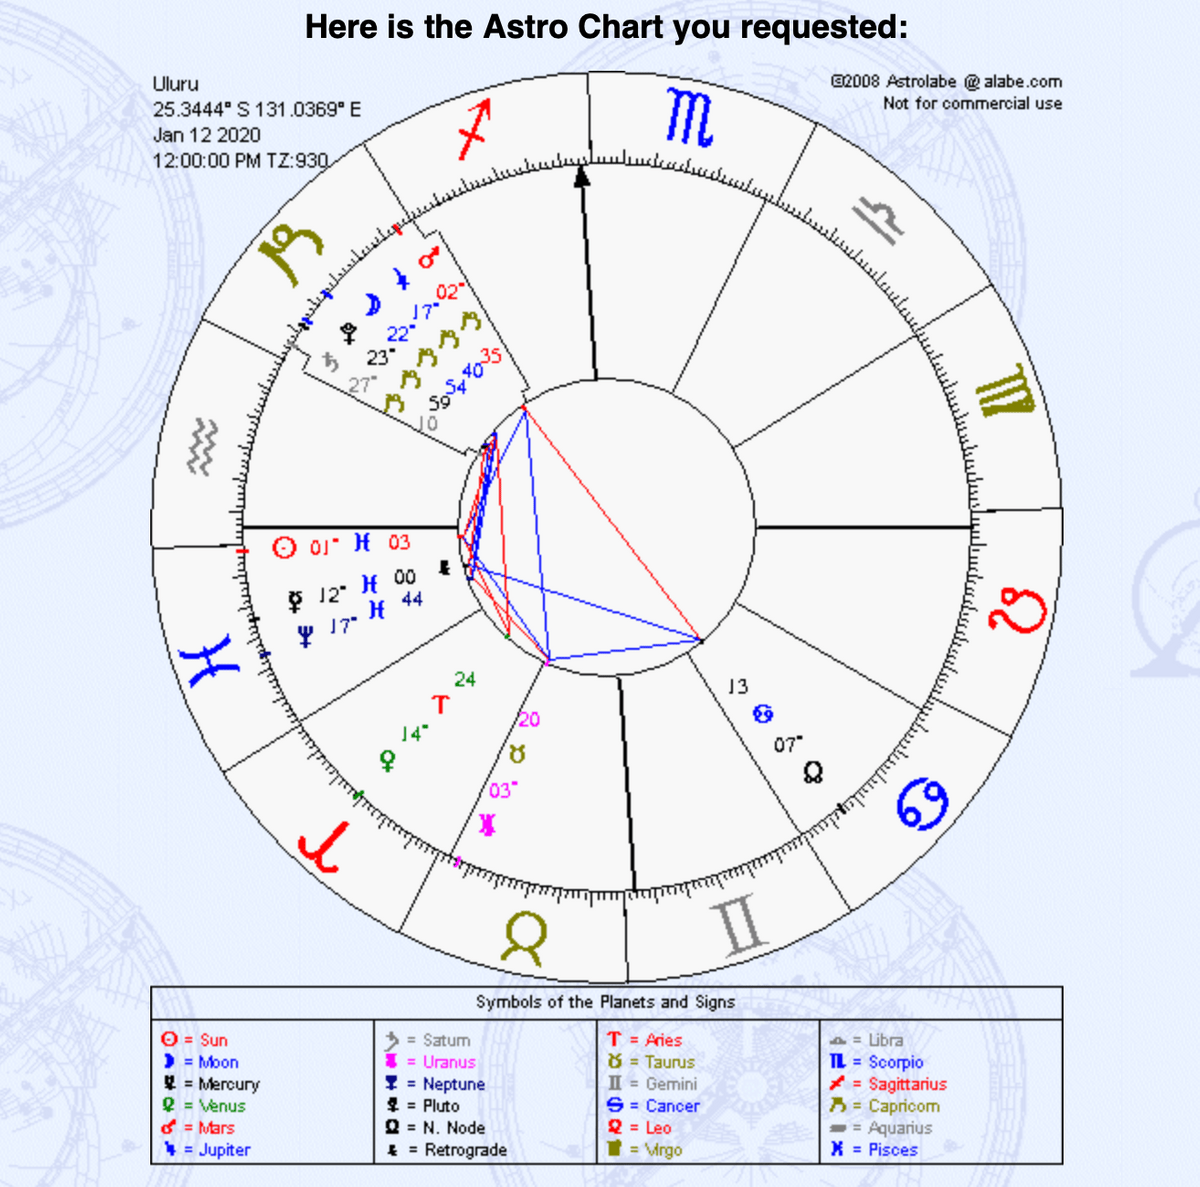 Natal chart courtesy of Astrolabe.com